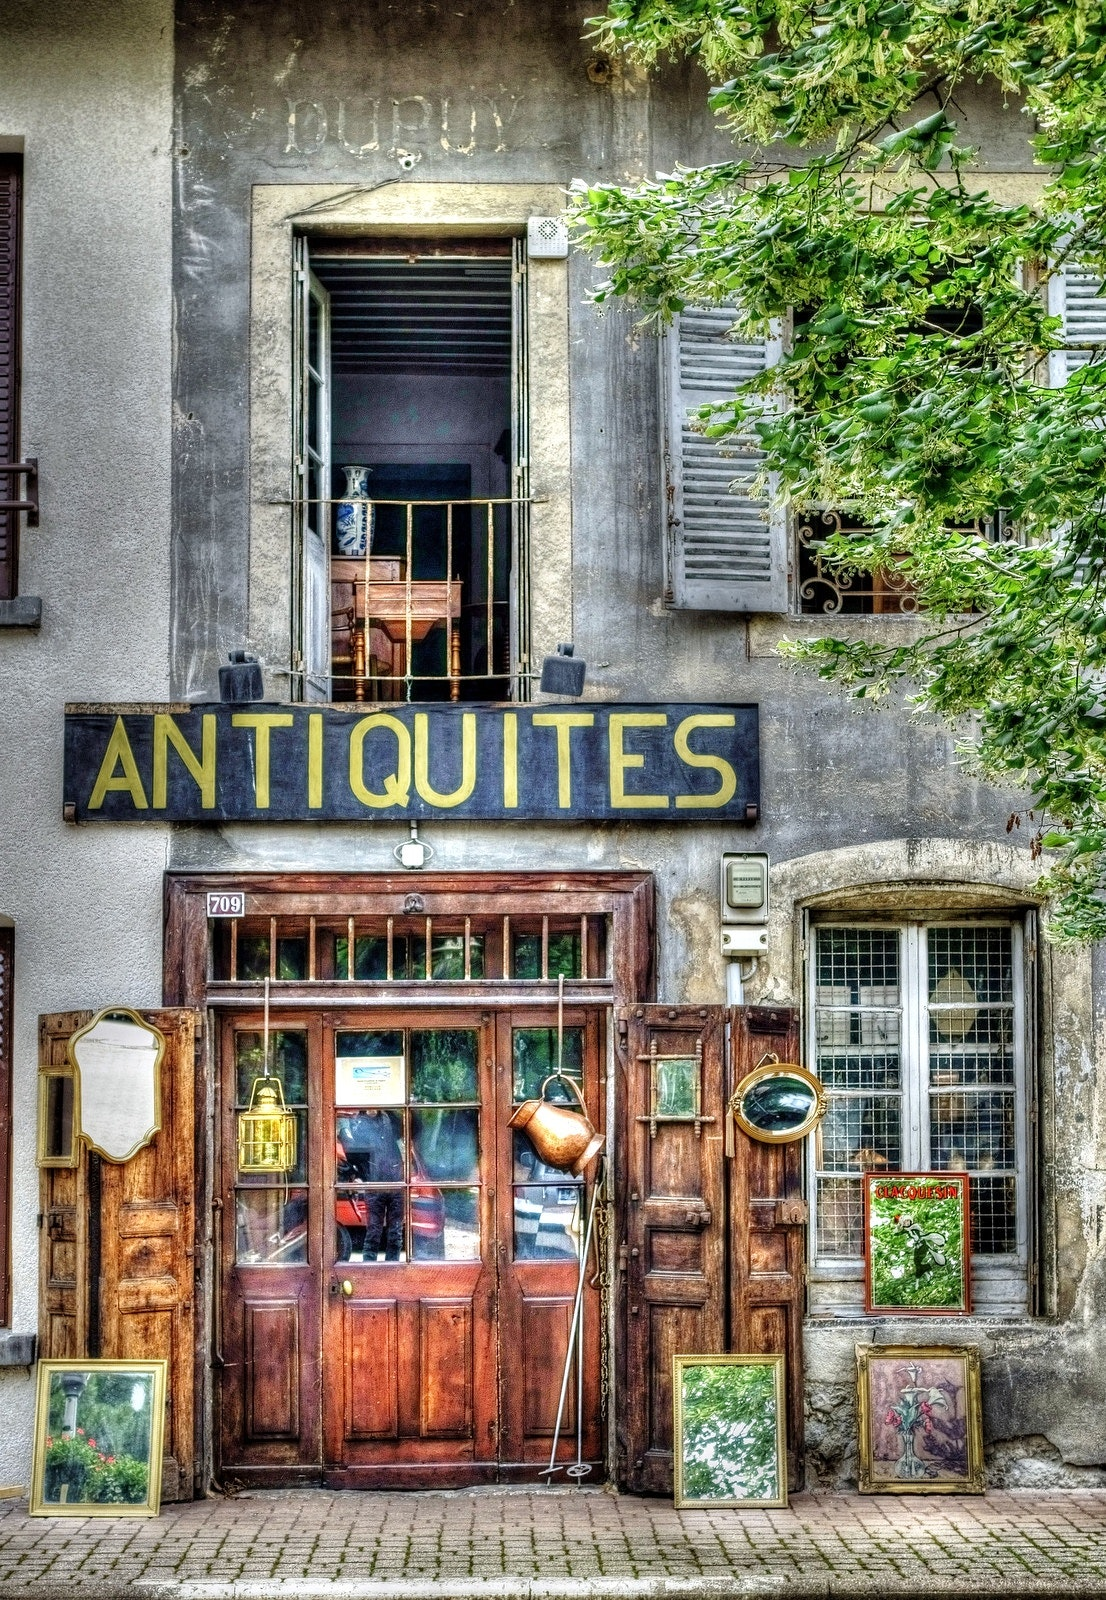 Antiquites Signage, Street, Wood, Window, Vintage, HQ Photo